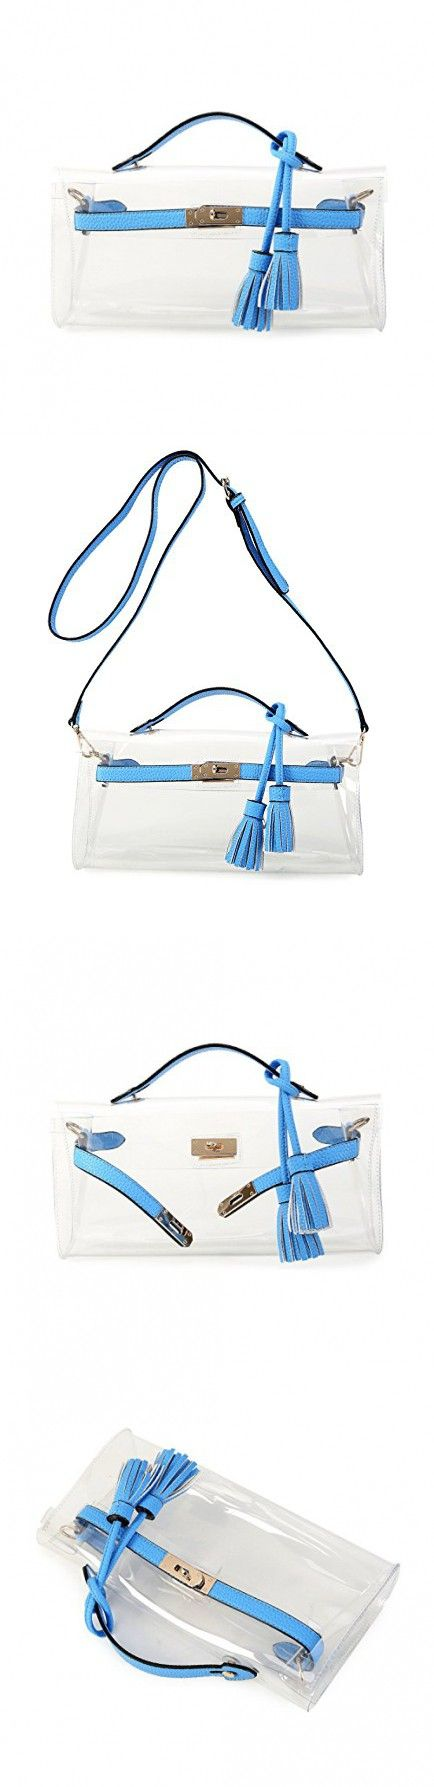 Lam Gallery Clear Purses and Handbags for Women Work NFL Stadium Approved Bags for Football Games Transparent Clutch Beach Bag PVC Plastic See Through Shoulder Crossbody Bags-Blue